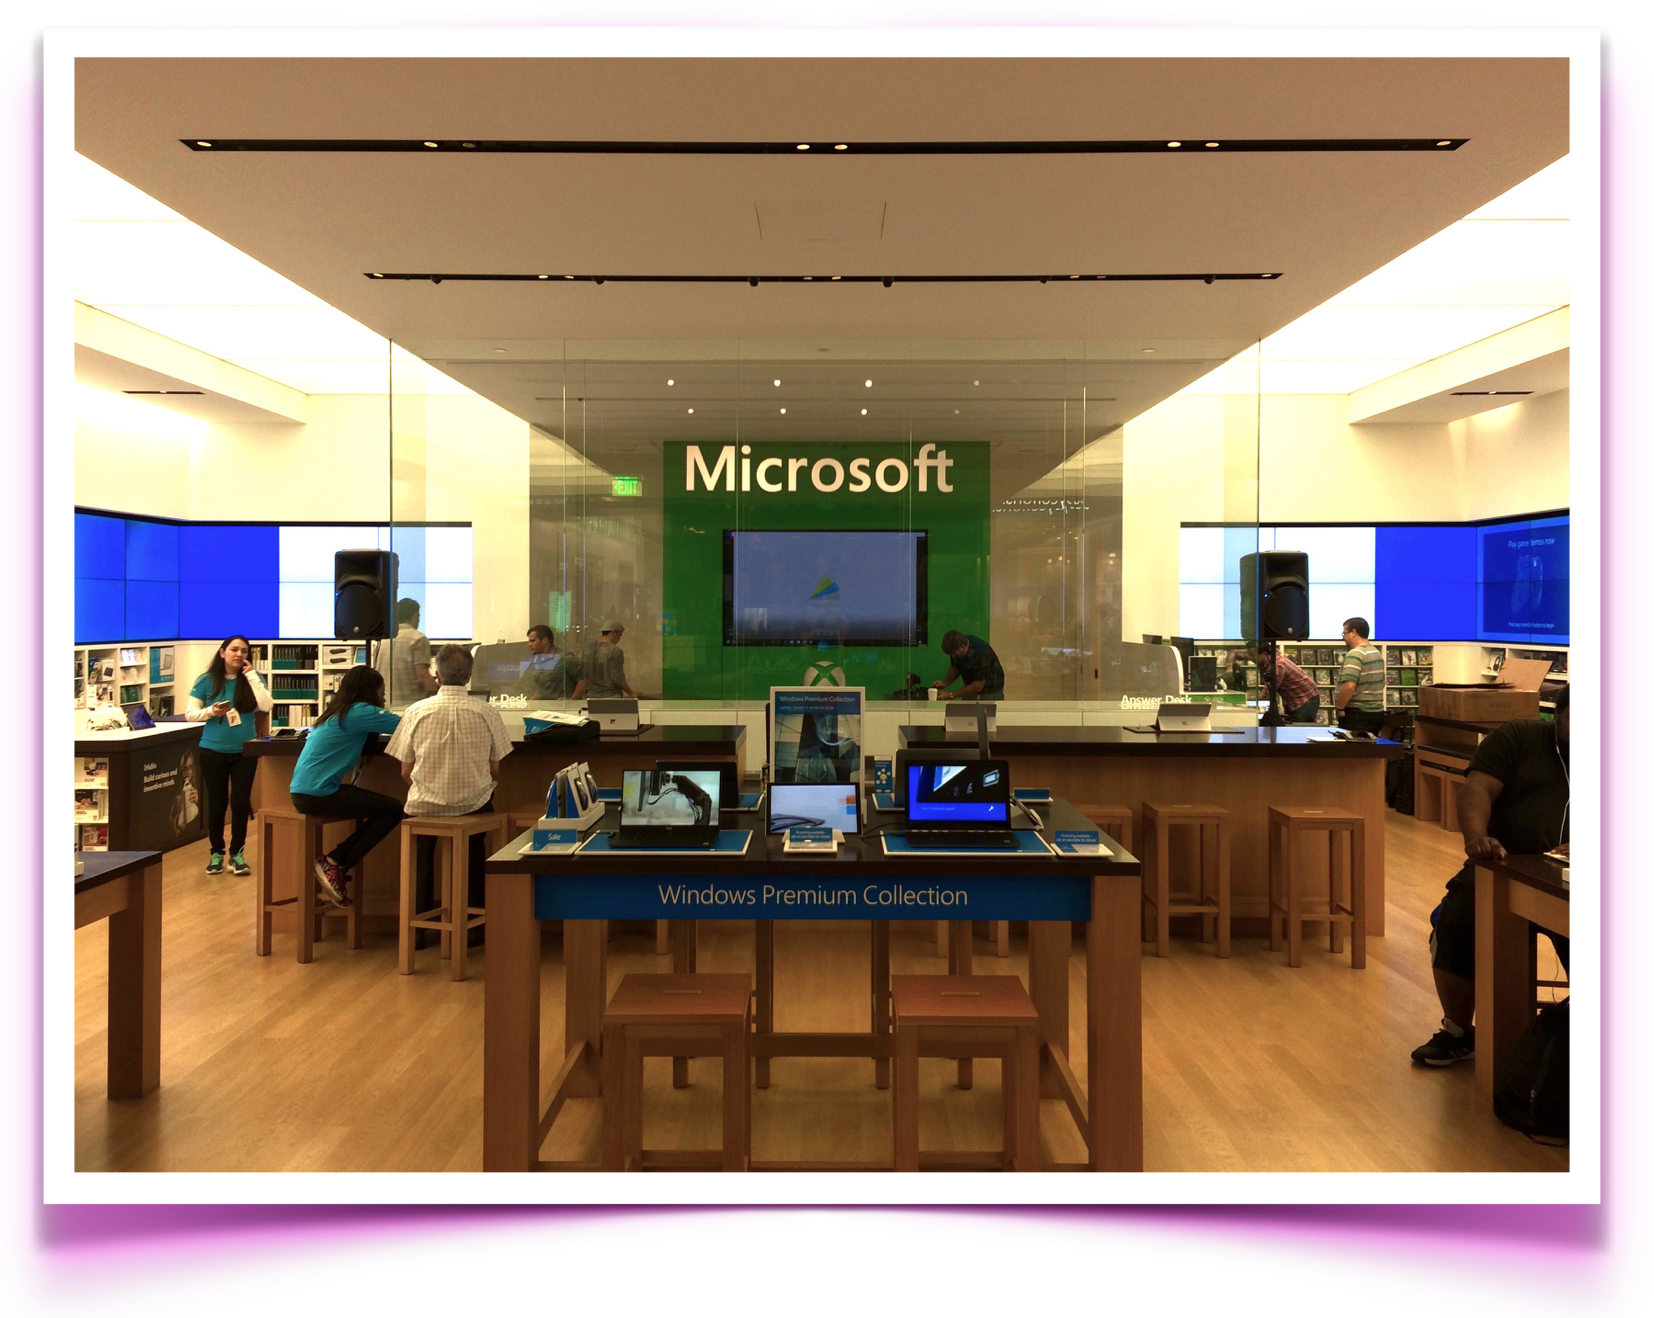 audio visual rentals    microsoft dadeland mall    miami